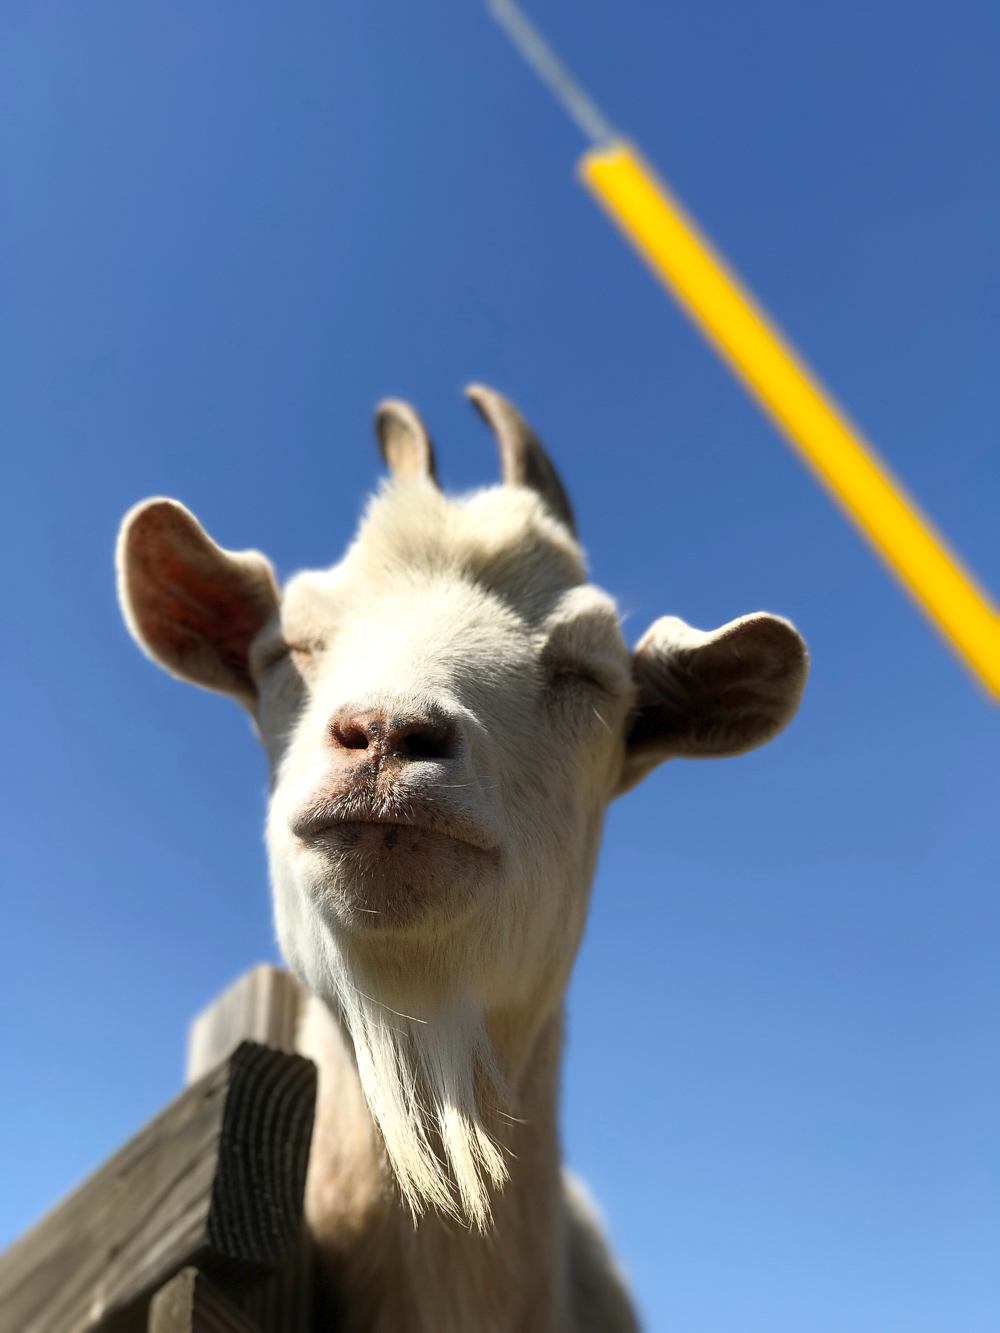 How sweet is this silly grinning goat with his beautiful long beard. <3